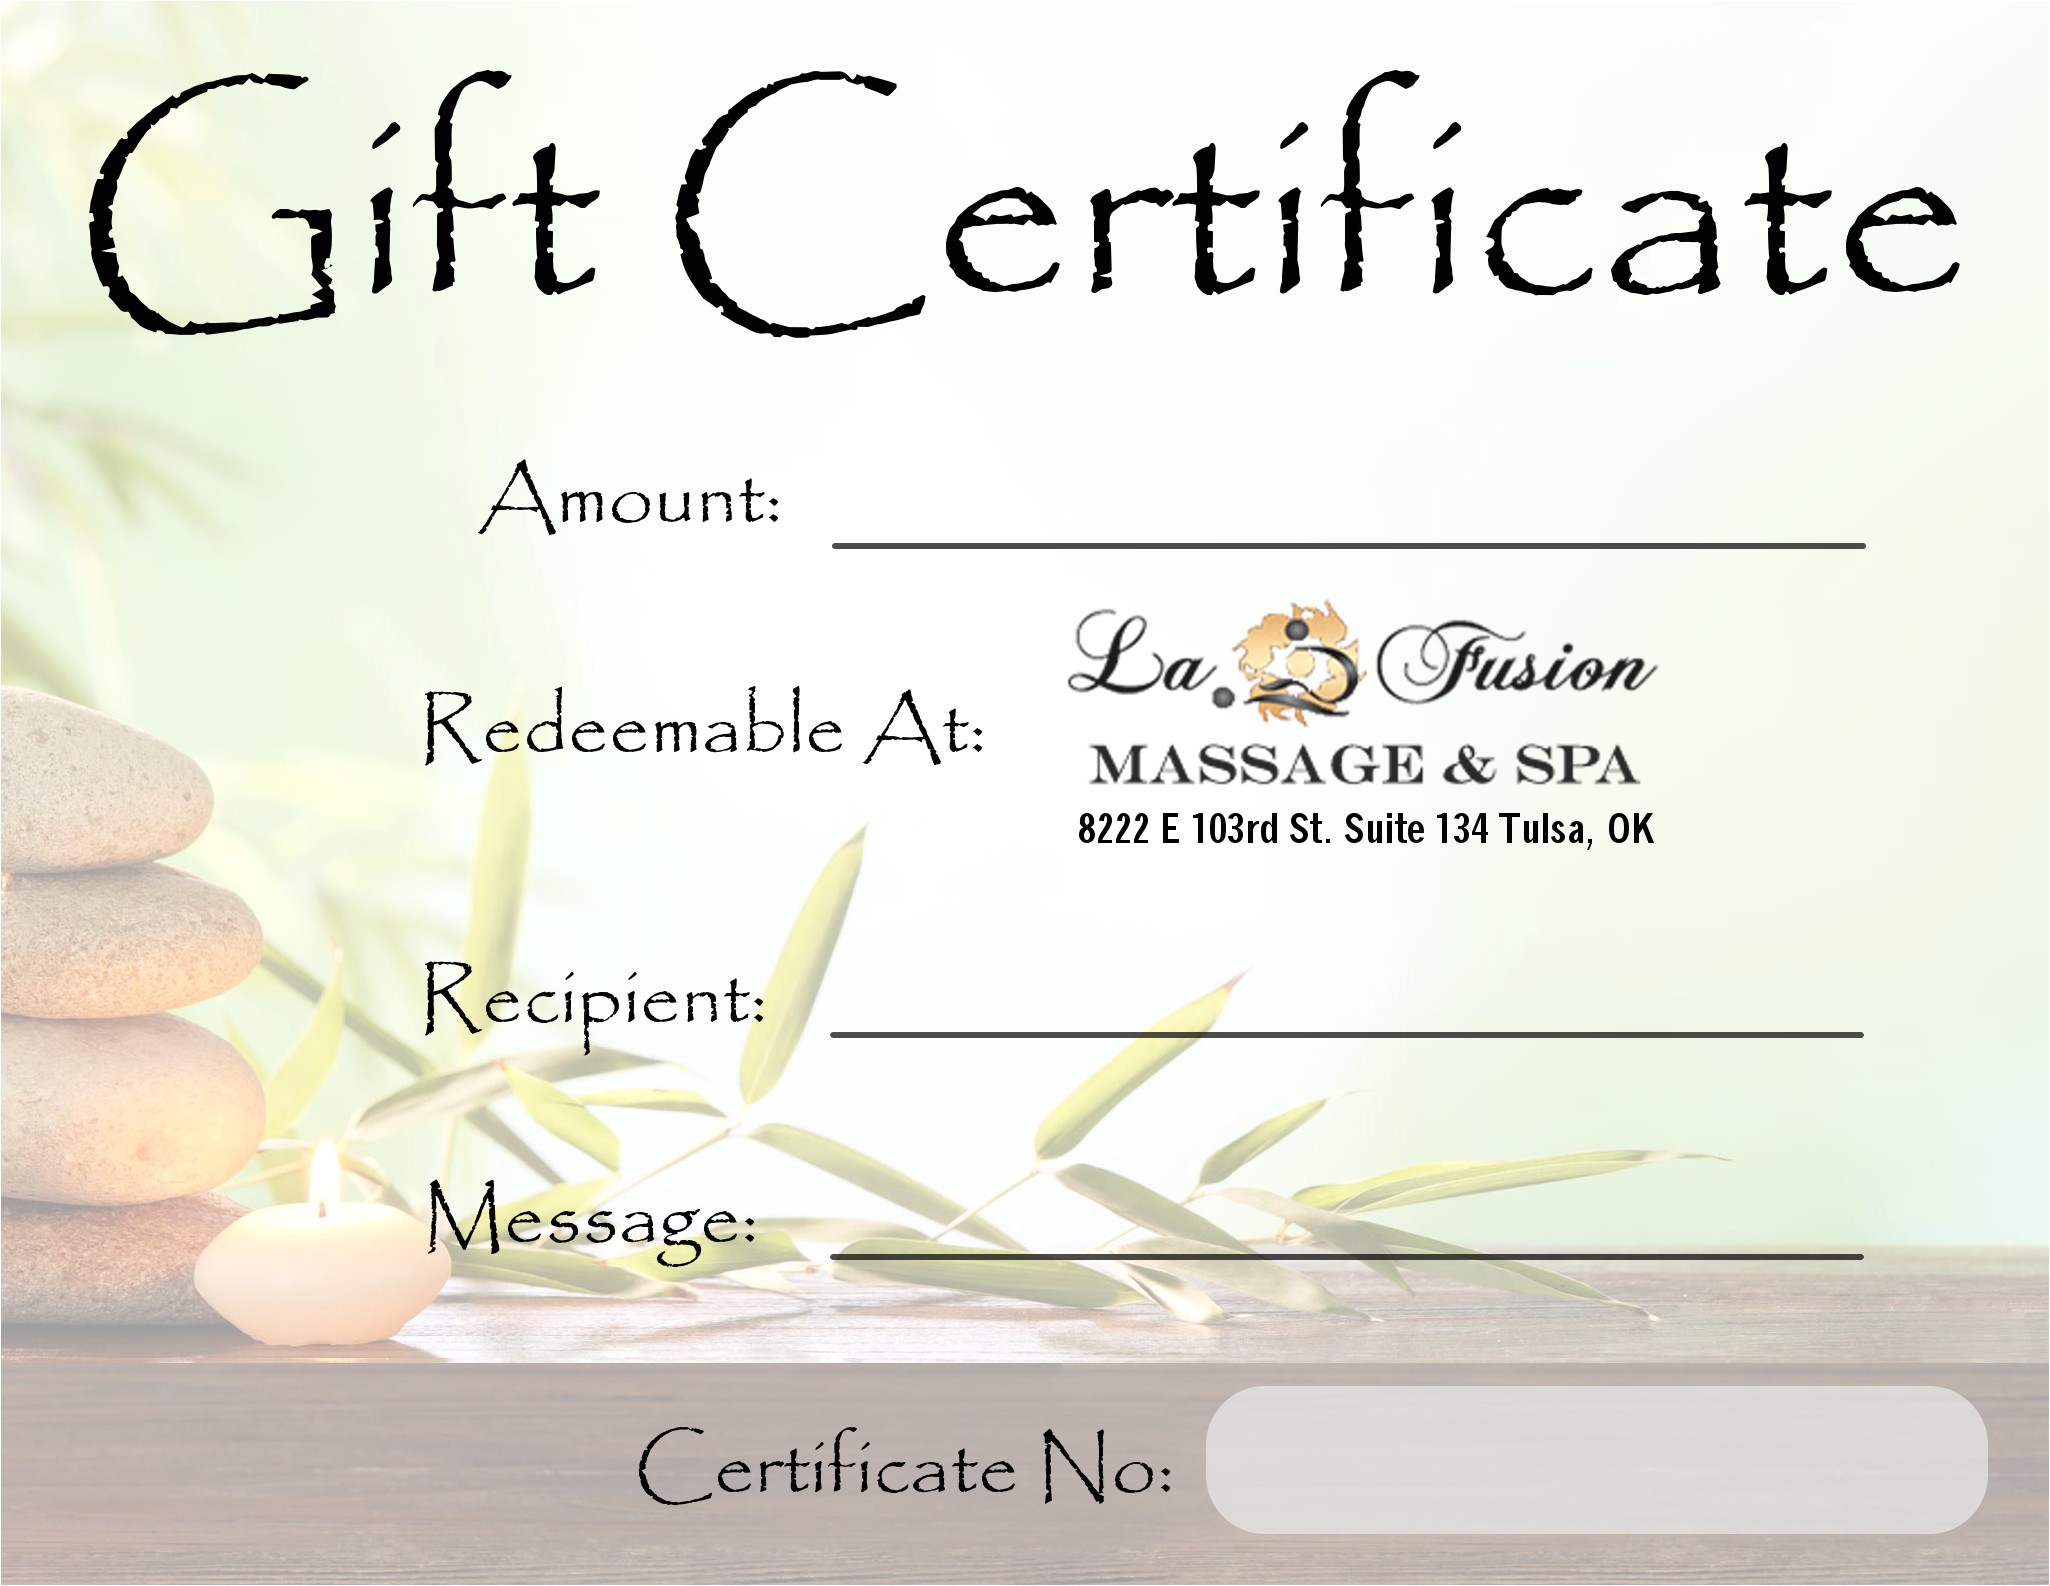 lafusion massage spa gift certificate